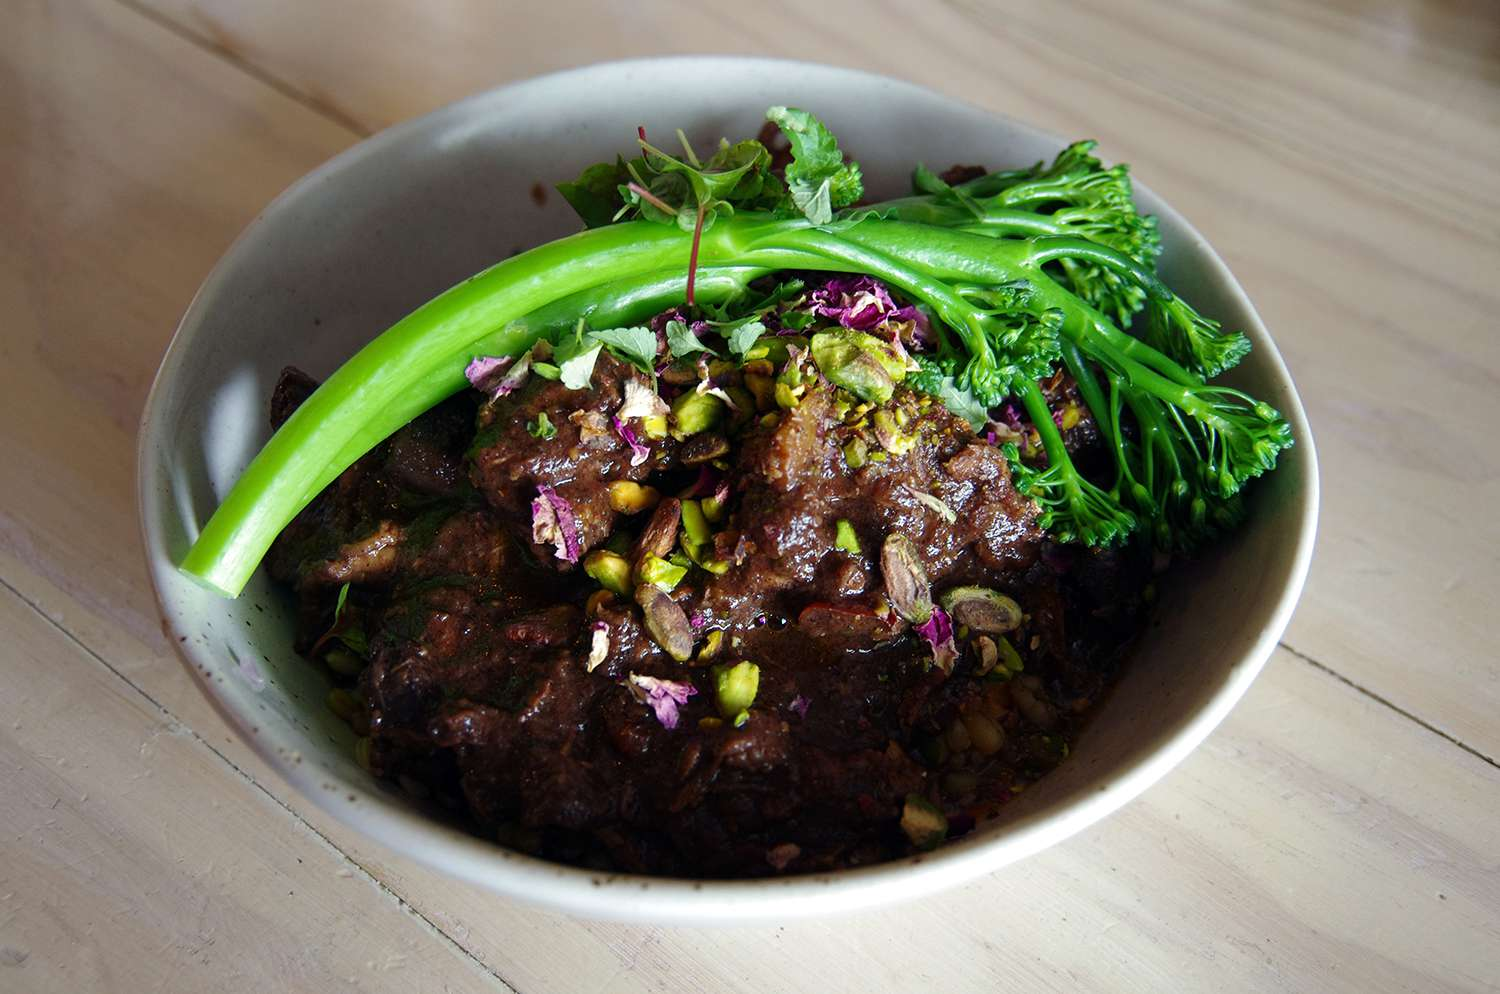 Moroccan-style lamb with pistachios and broccolini